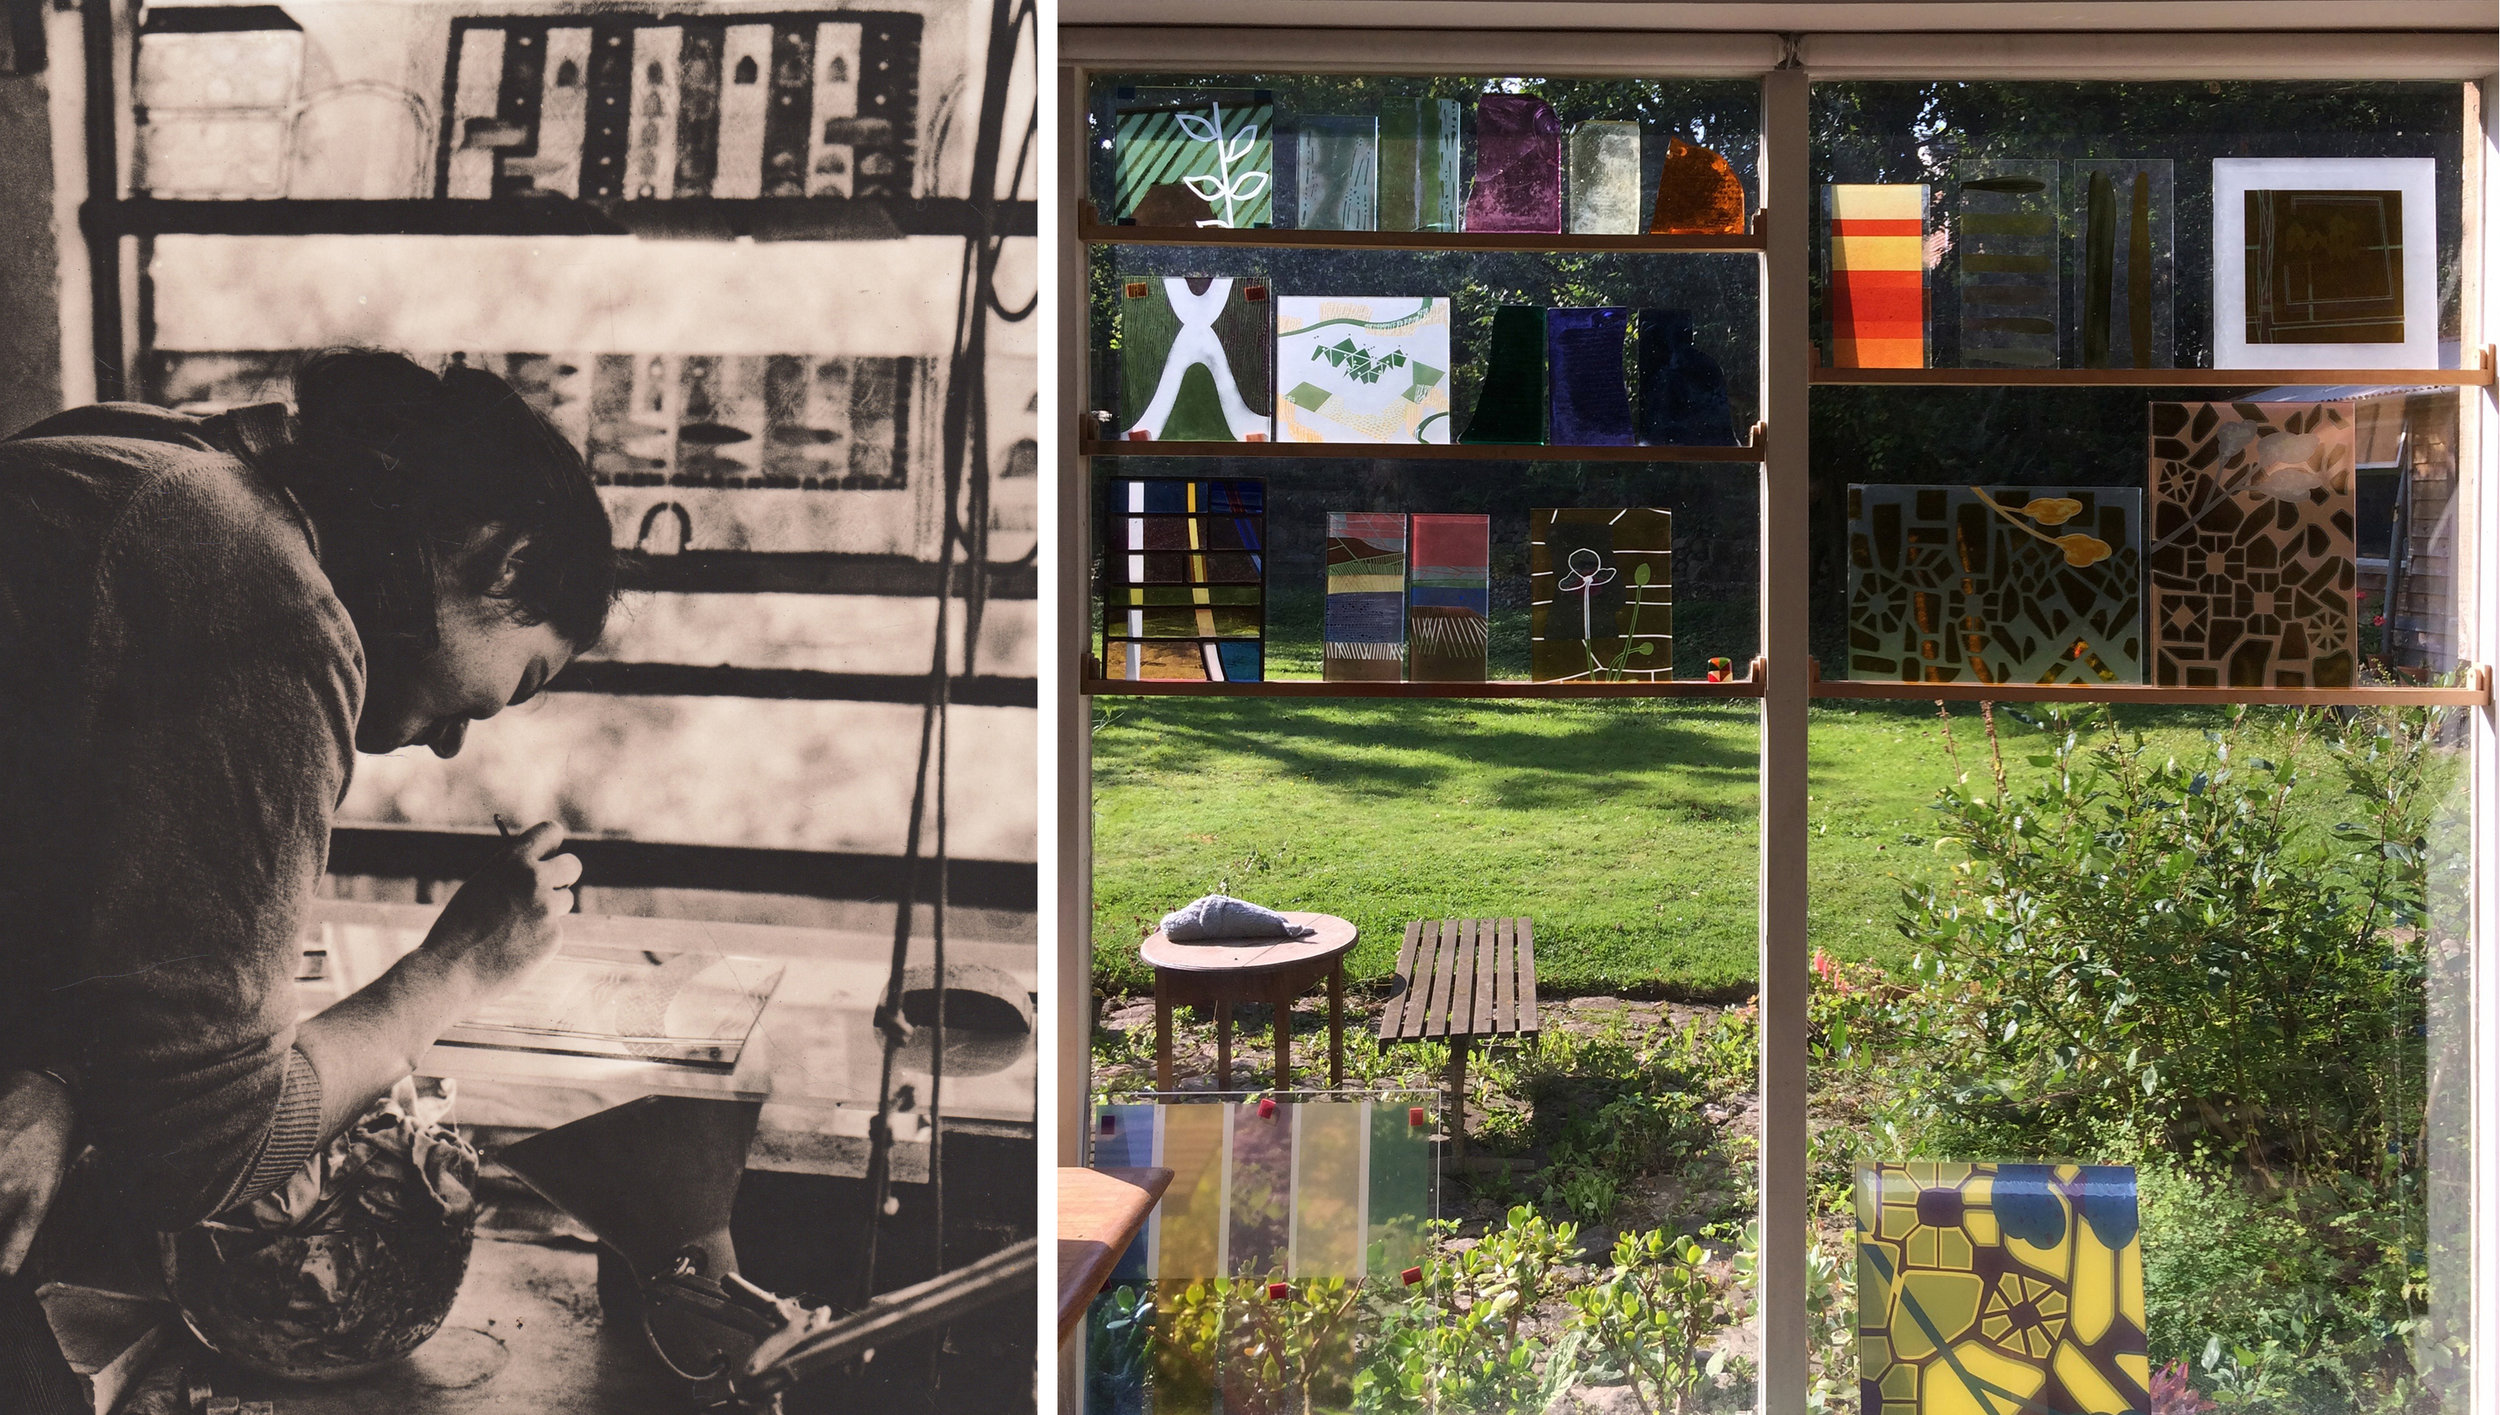 Left, my window at The Royal College of Art in 1985. Right, my studio window this week (2019).